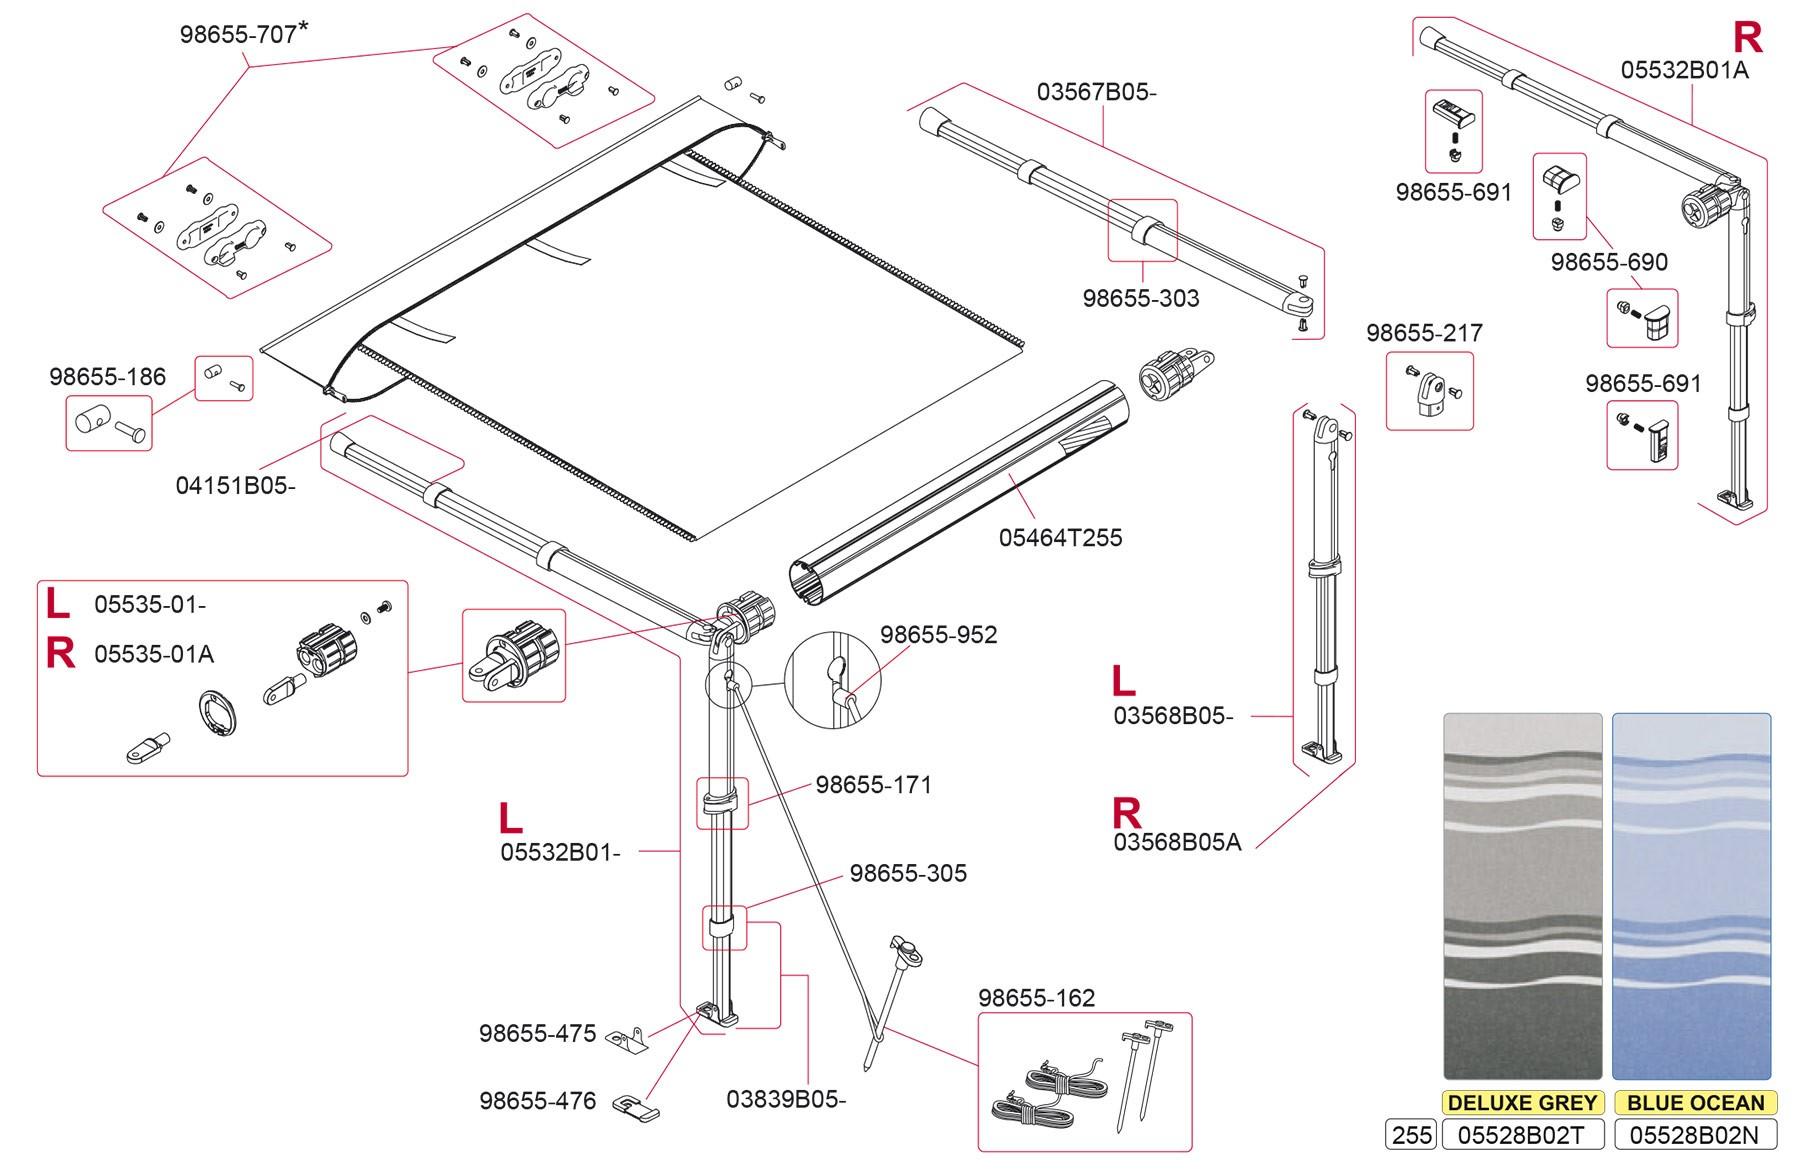 Fiamma Awnings Bike Rack And Ultra Box For Motorhome Click On Schematic To Magnify Mouse Over Above Image Or Open In A New Window Select Your Parts From The List Below